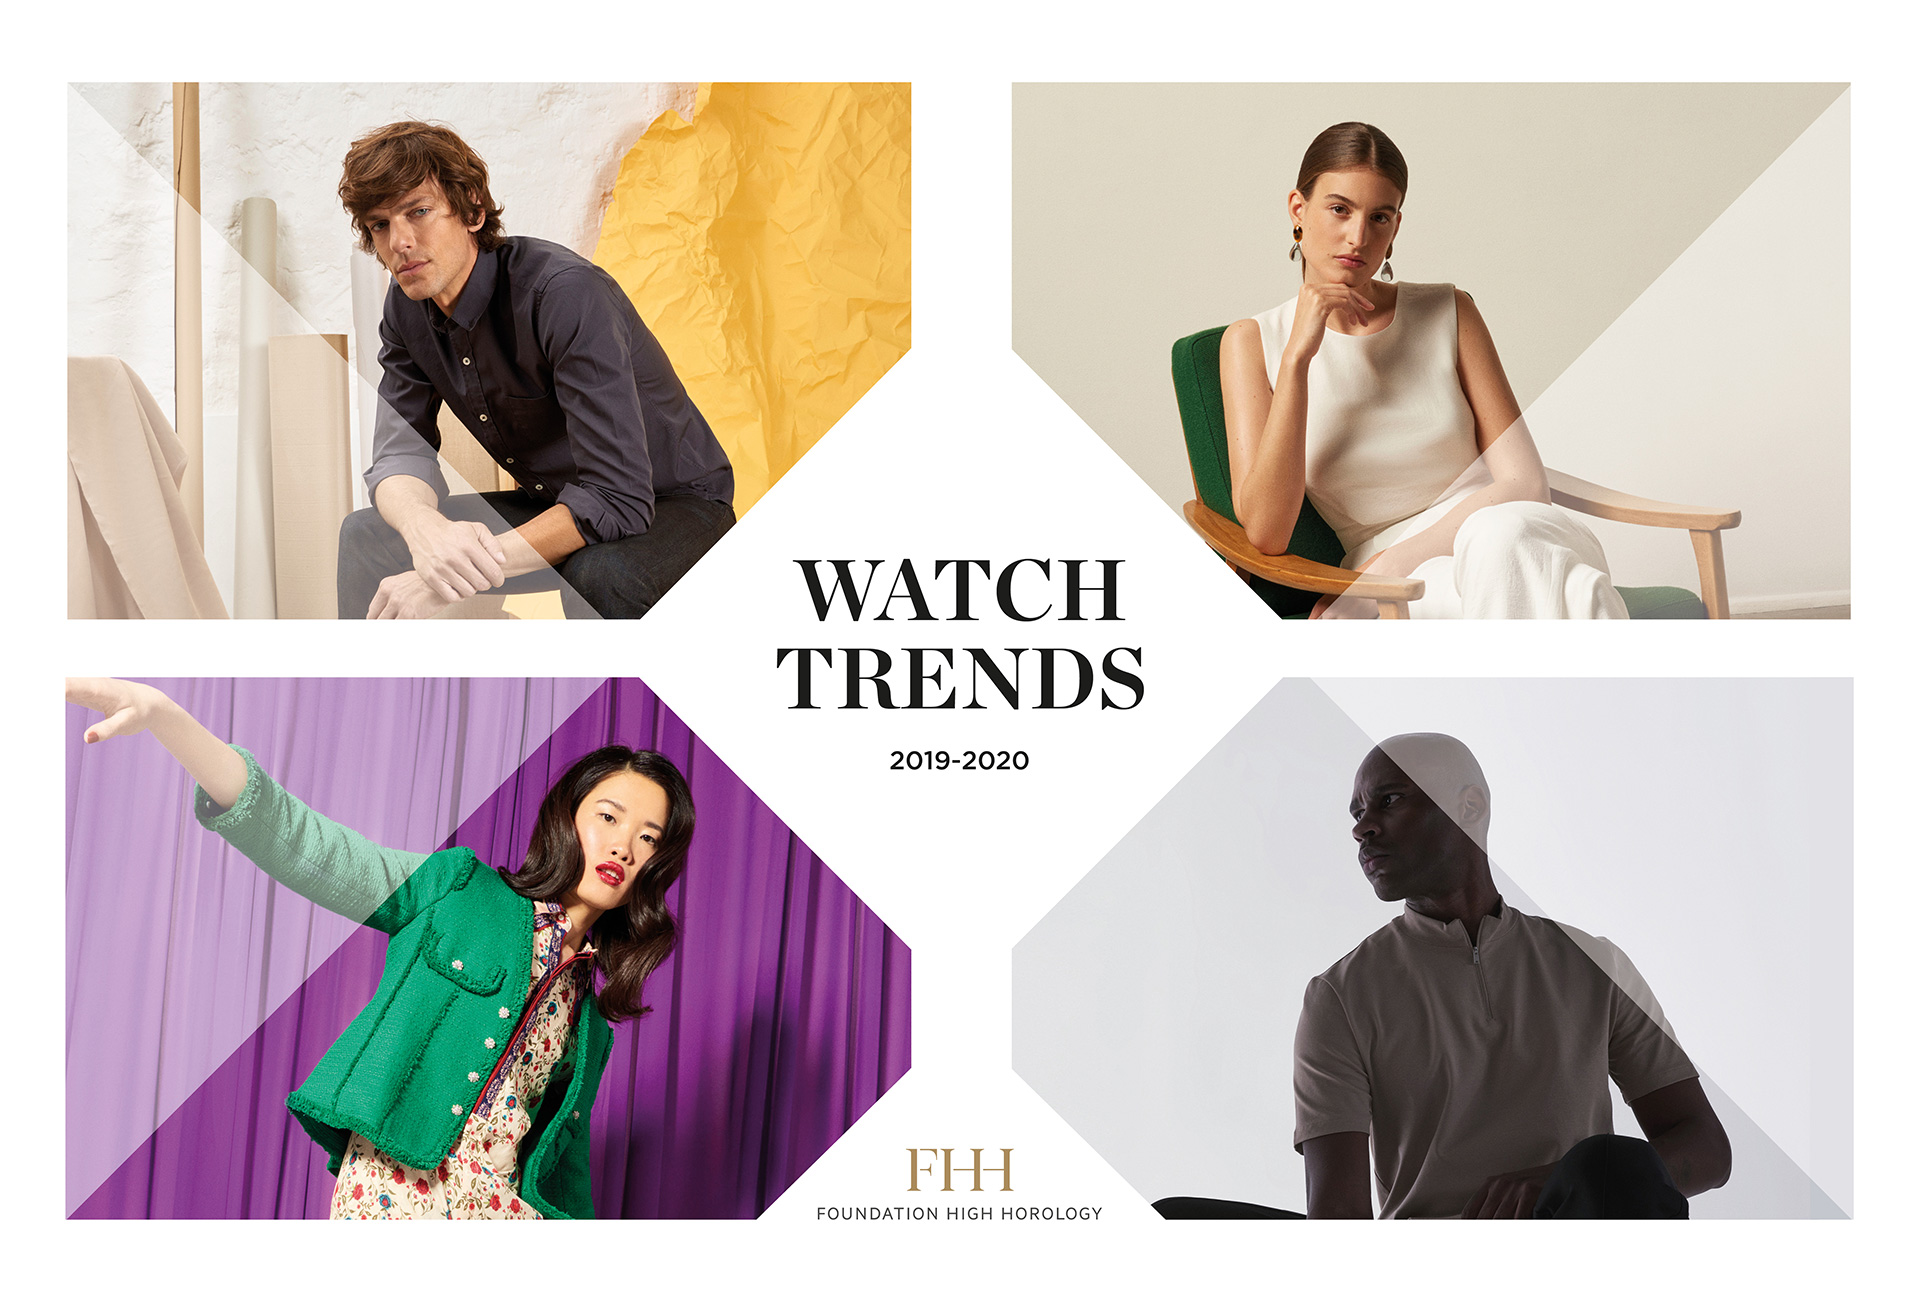 Trends 2020.Watch Trends 2019 2020 A Unique Analysis From The Fhh Fhh